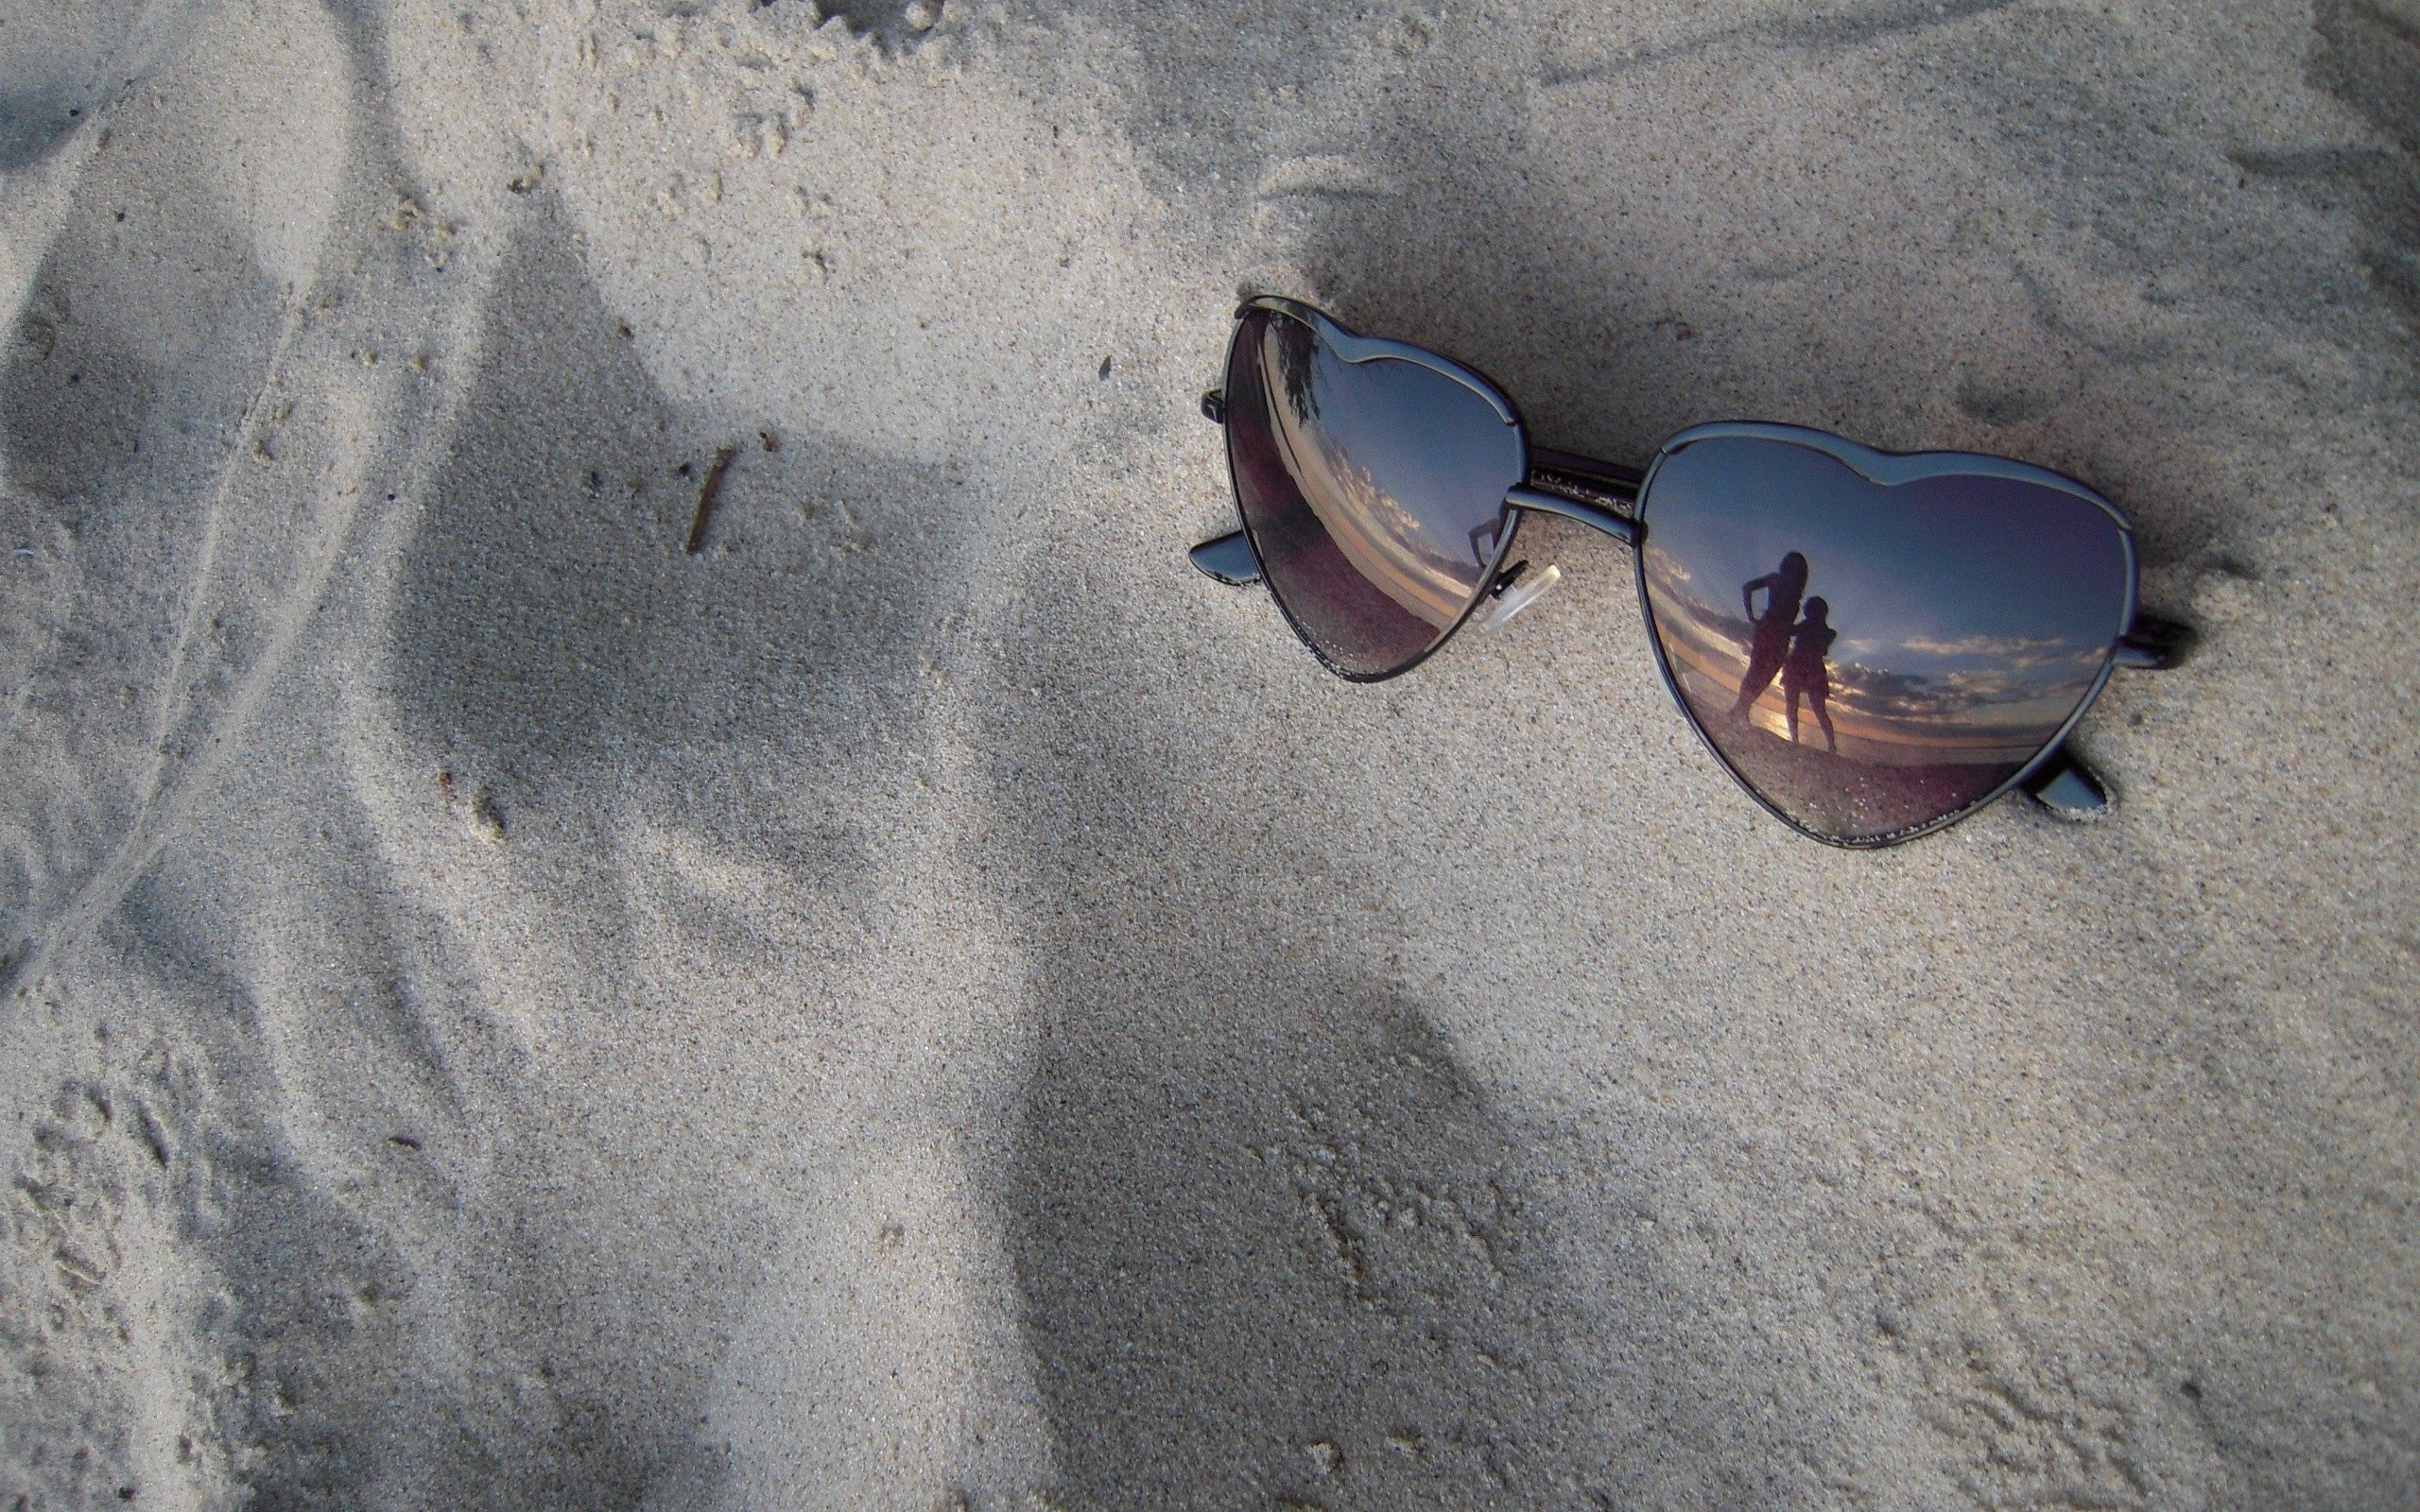 155539 download wallpaper Miscellanea, Miscellaneous, Glasses, Spectacles, Sand, Reflection screensavers and pictures for free